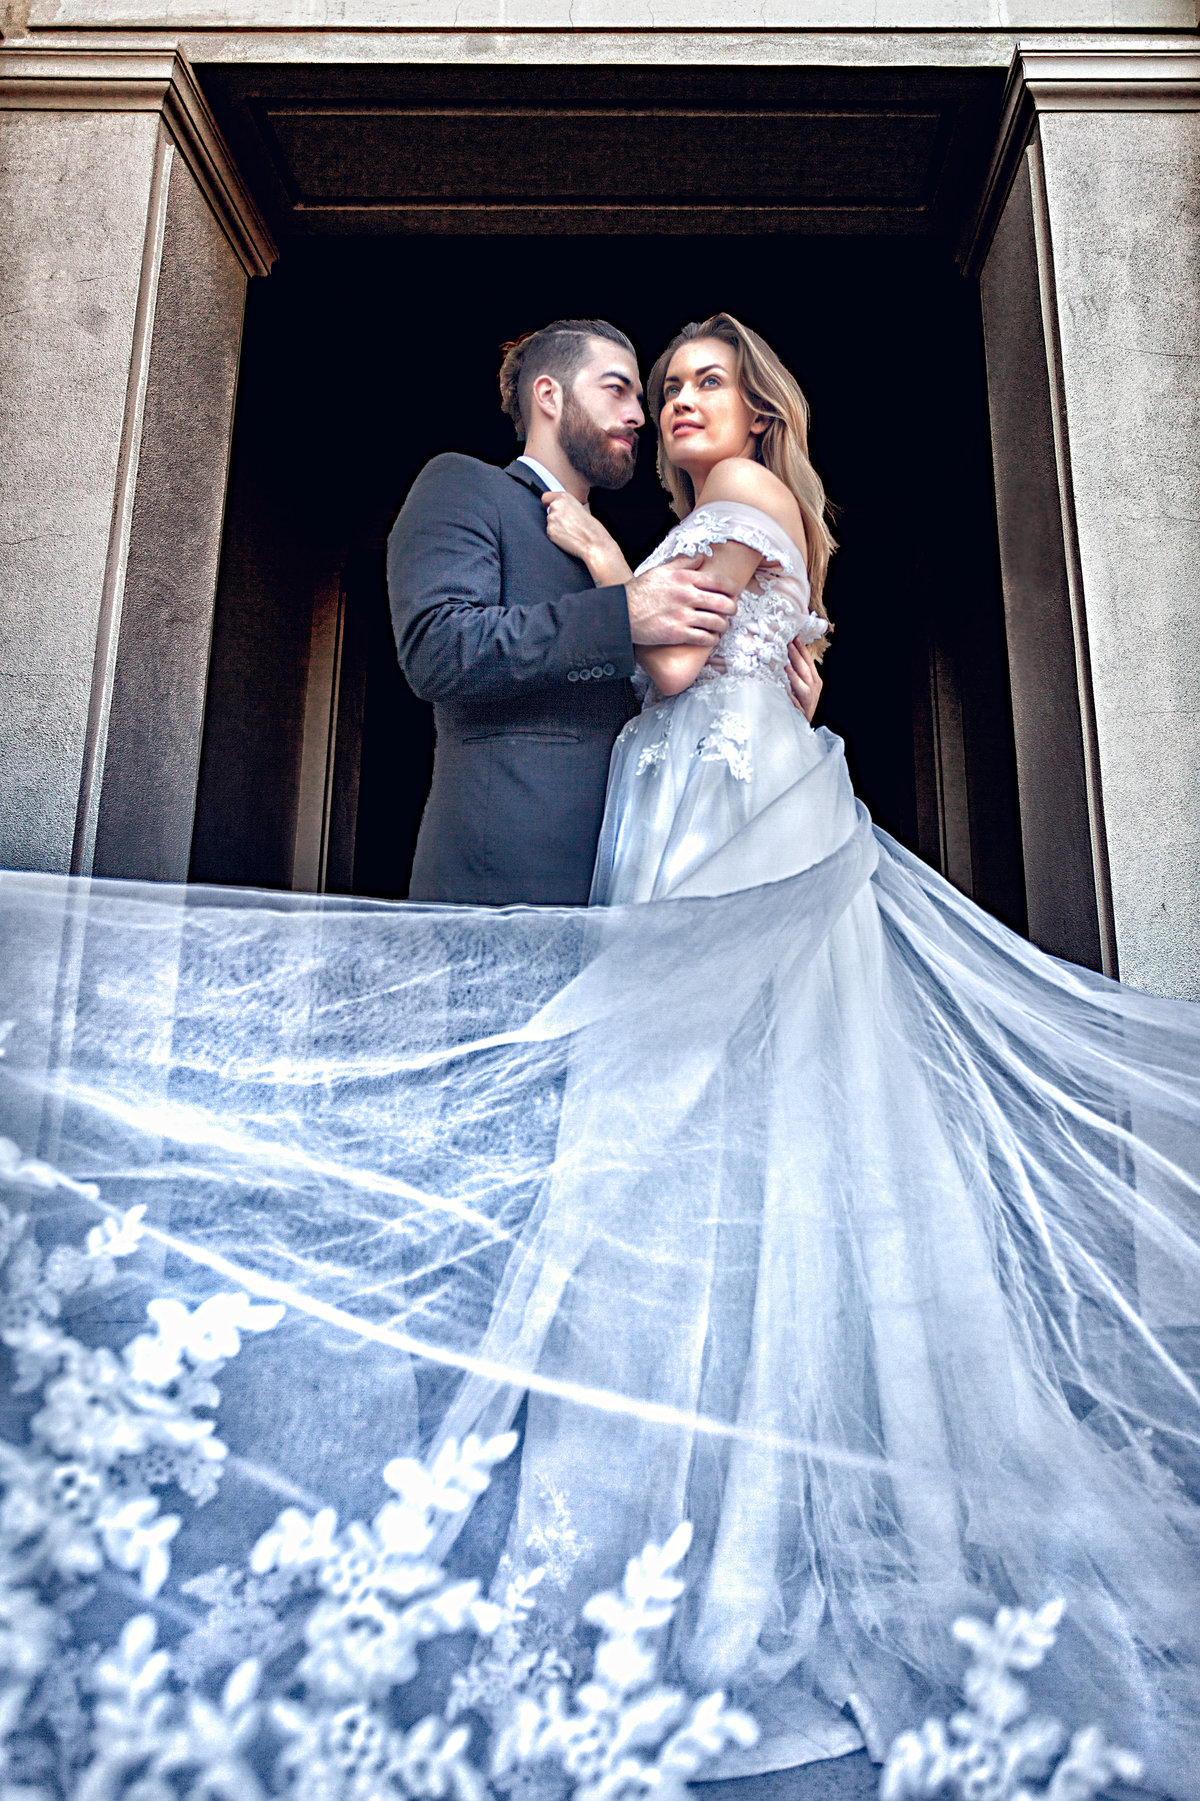 A bride and groom look at each other in the archway of a townhall, while the wedding dress flows towards the viewers eye, dramatically lighting the wedding dress.